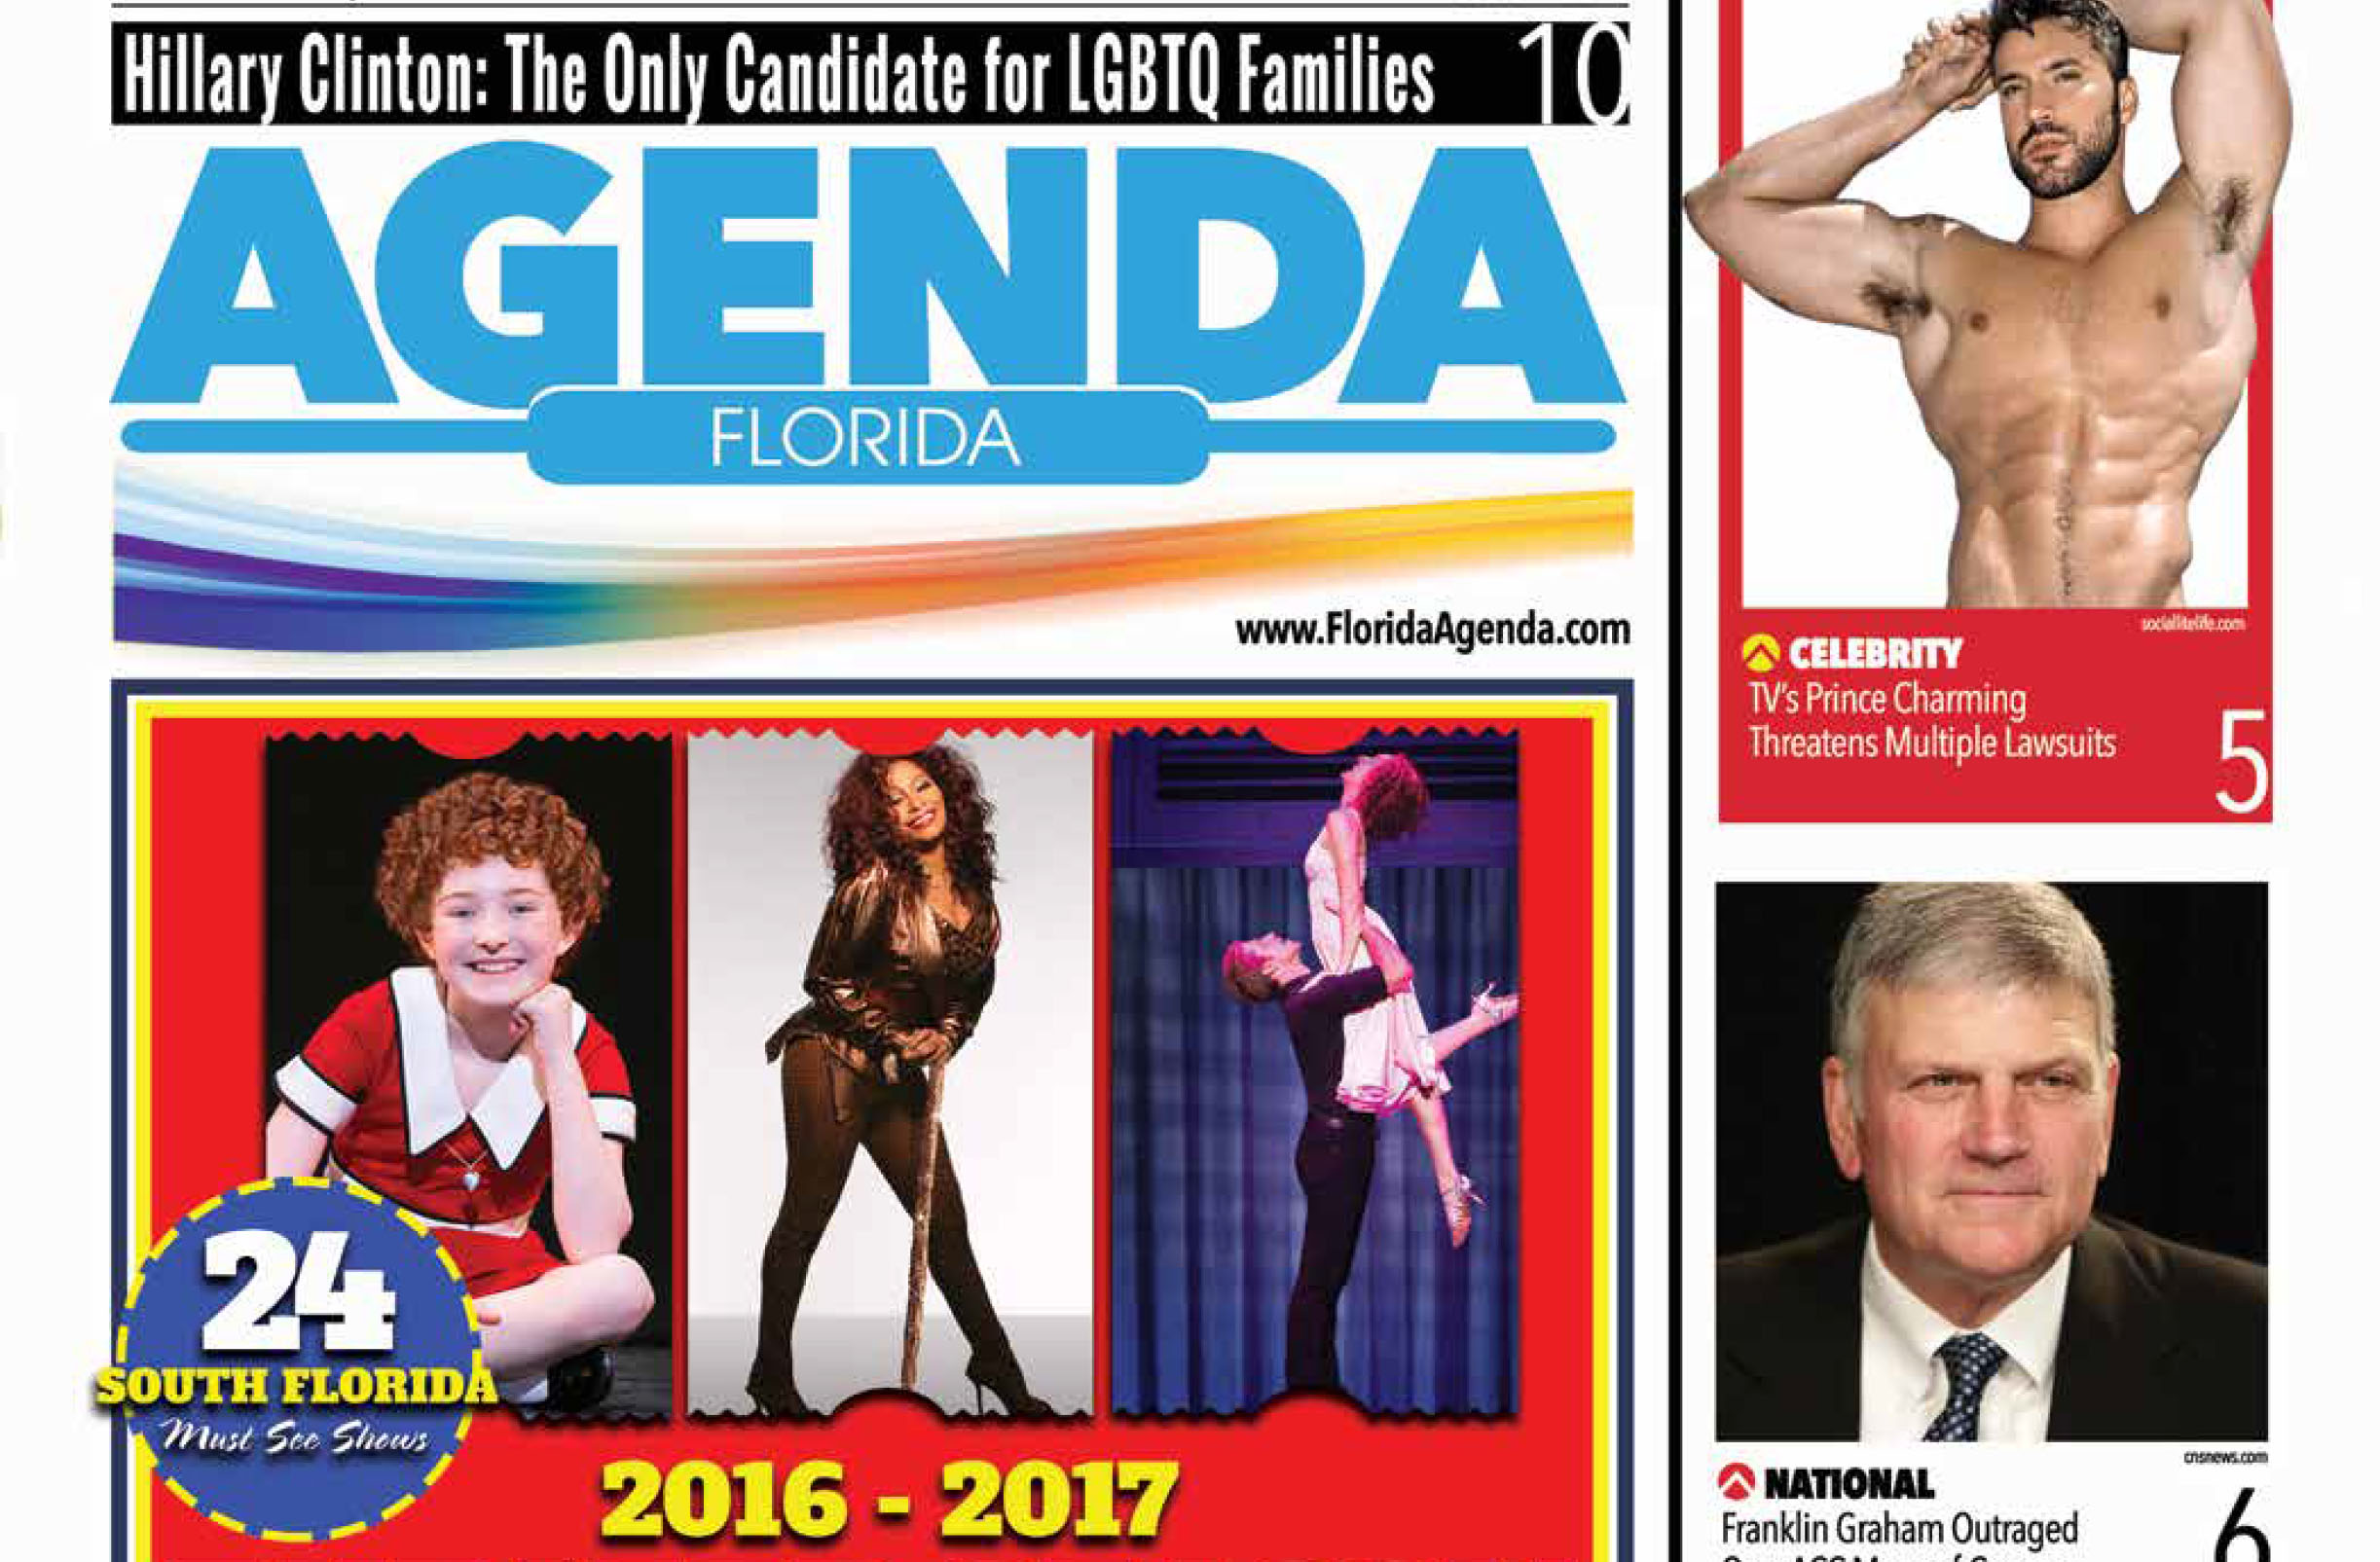 BREAKING NEWS: Parent Company of Florida Agenda Shuts Down Operations